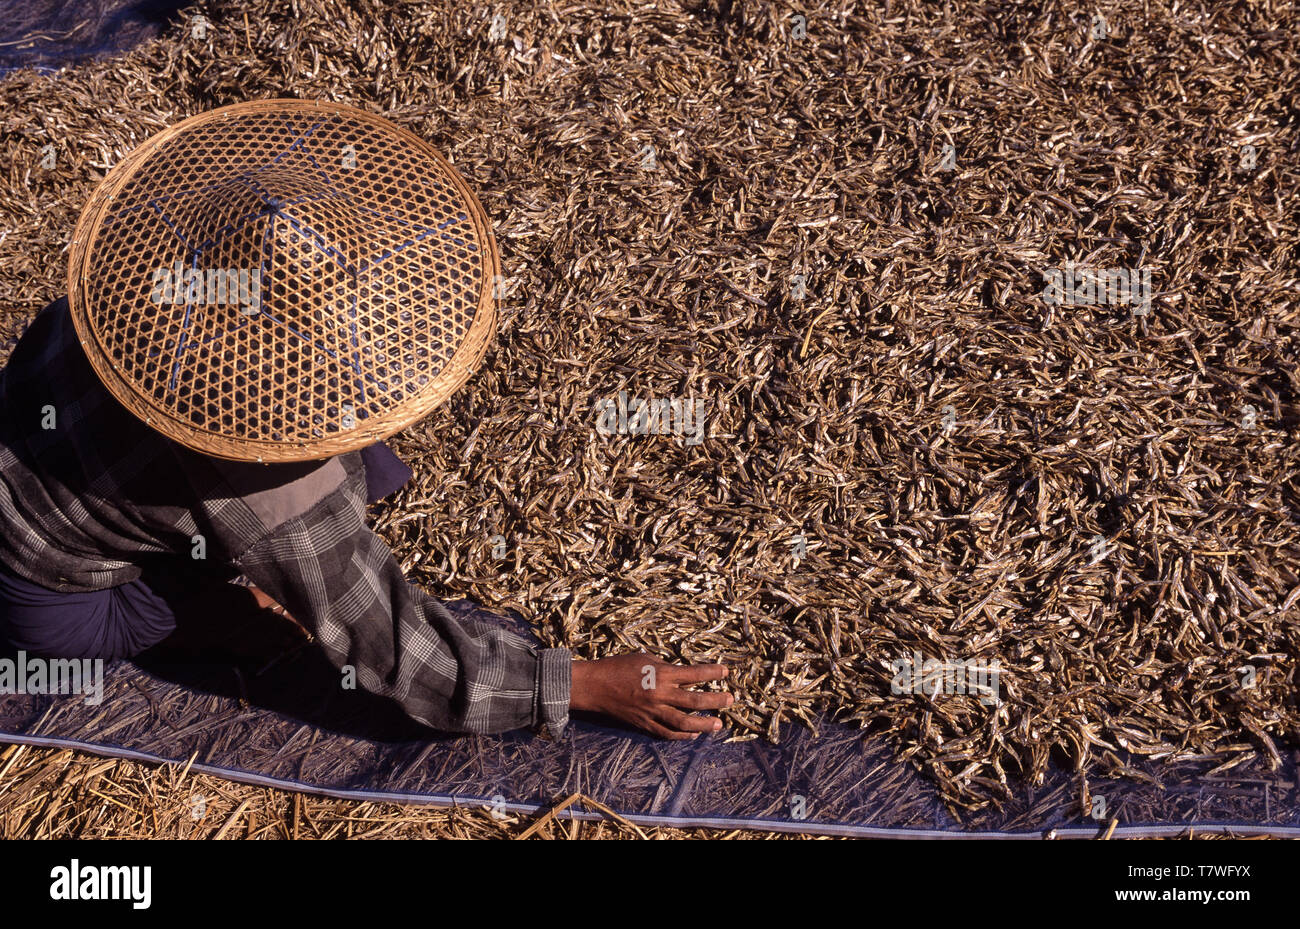 24.02.2008, Thandwe, Rakhine State, Myanmar, Asia - A woman is spreading out dried fish on Ngapali Beach. - Stock Image